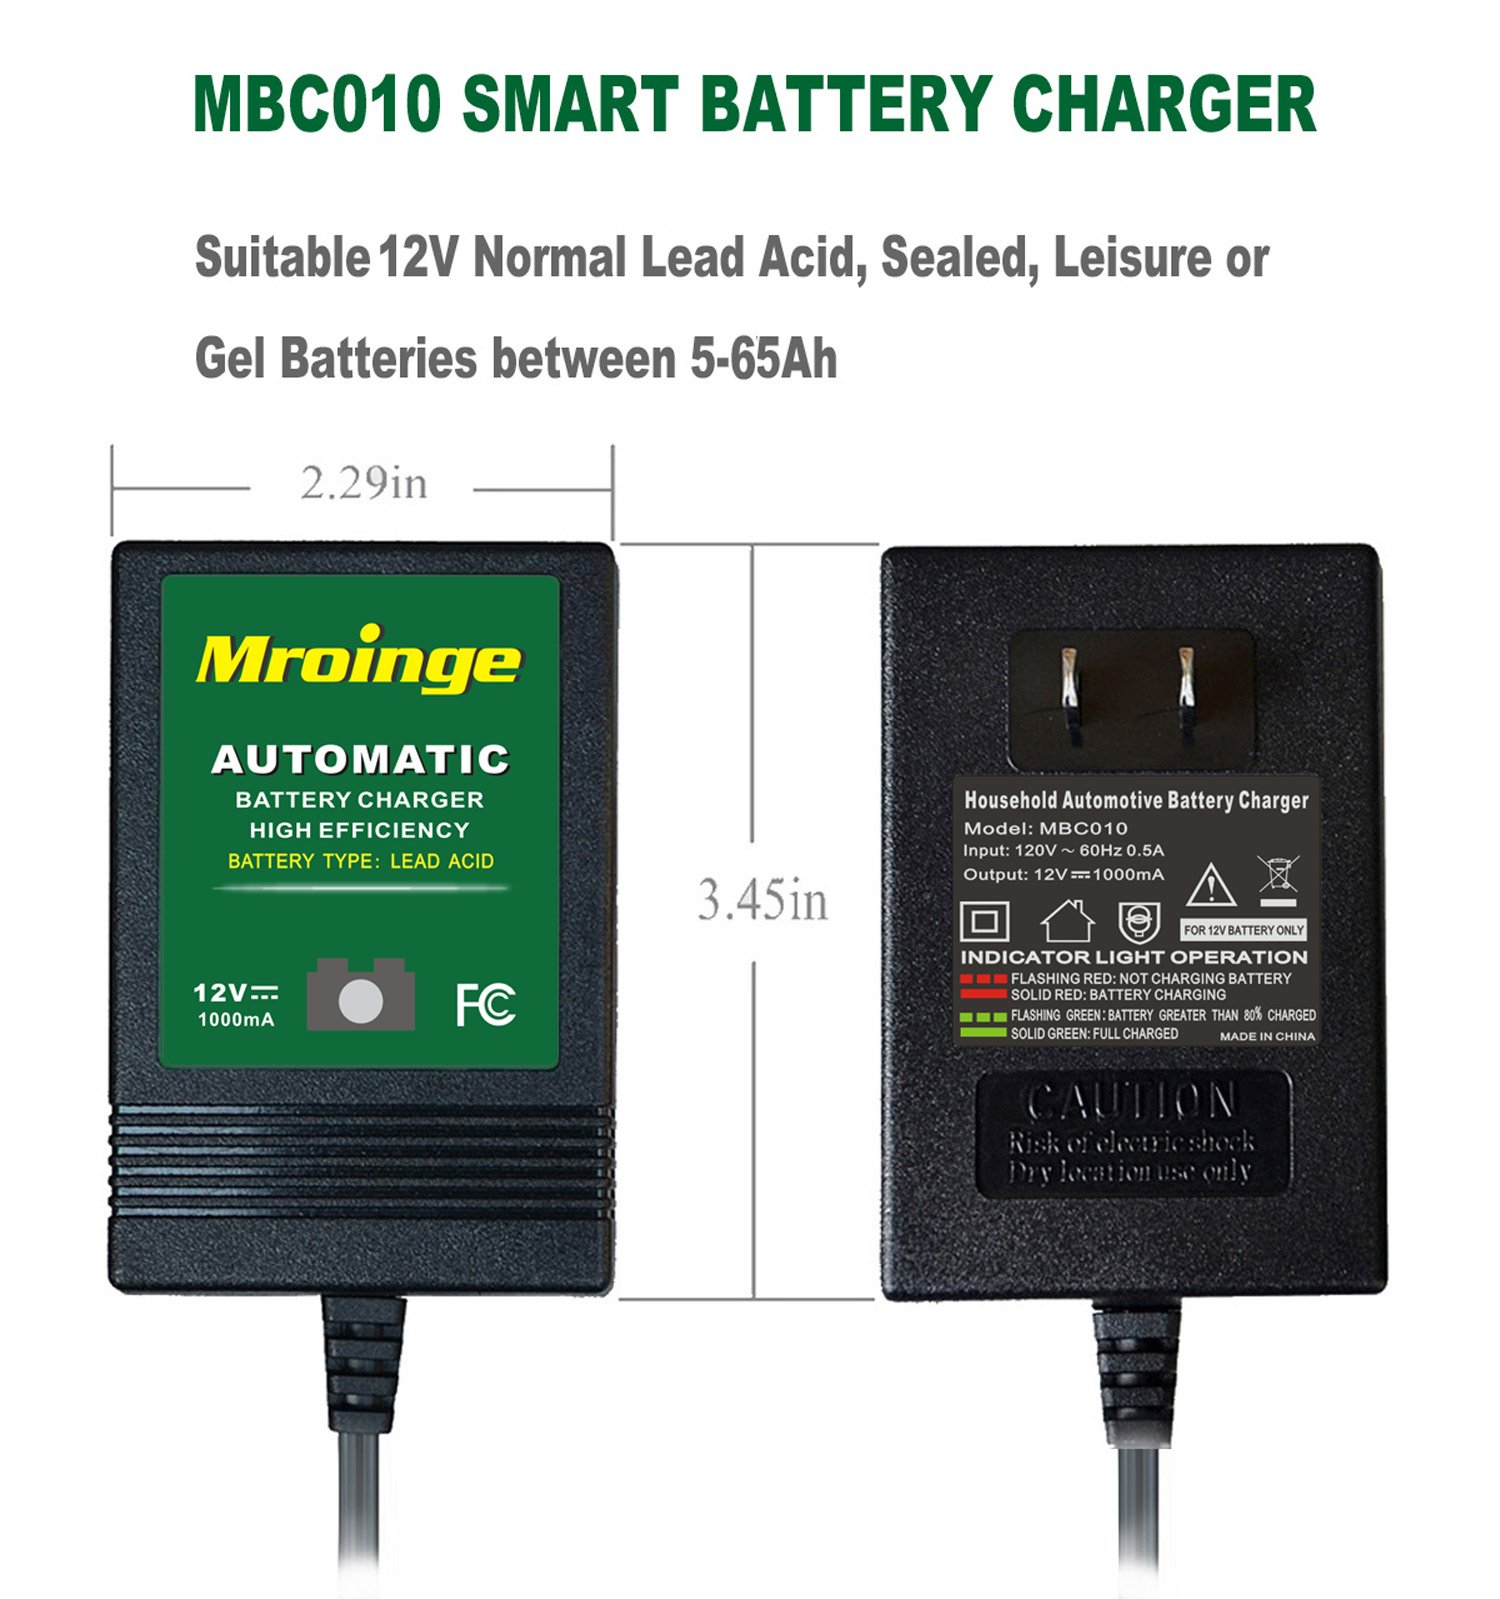 Mroinge automotive trickle battery charger maintainer 12V 1A for car motorcycle Lawn Mower SLA ATV WET AGM GEL CELL Lead Acid Batteries, Smart battery charger is tender charge for protect your battery by Mroinge (Image #2)